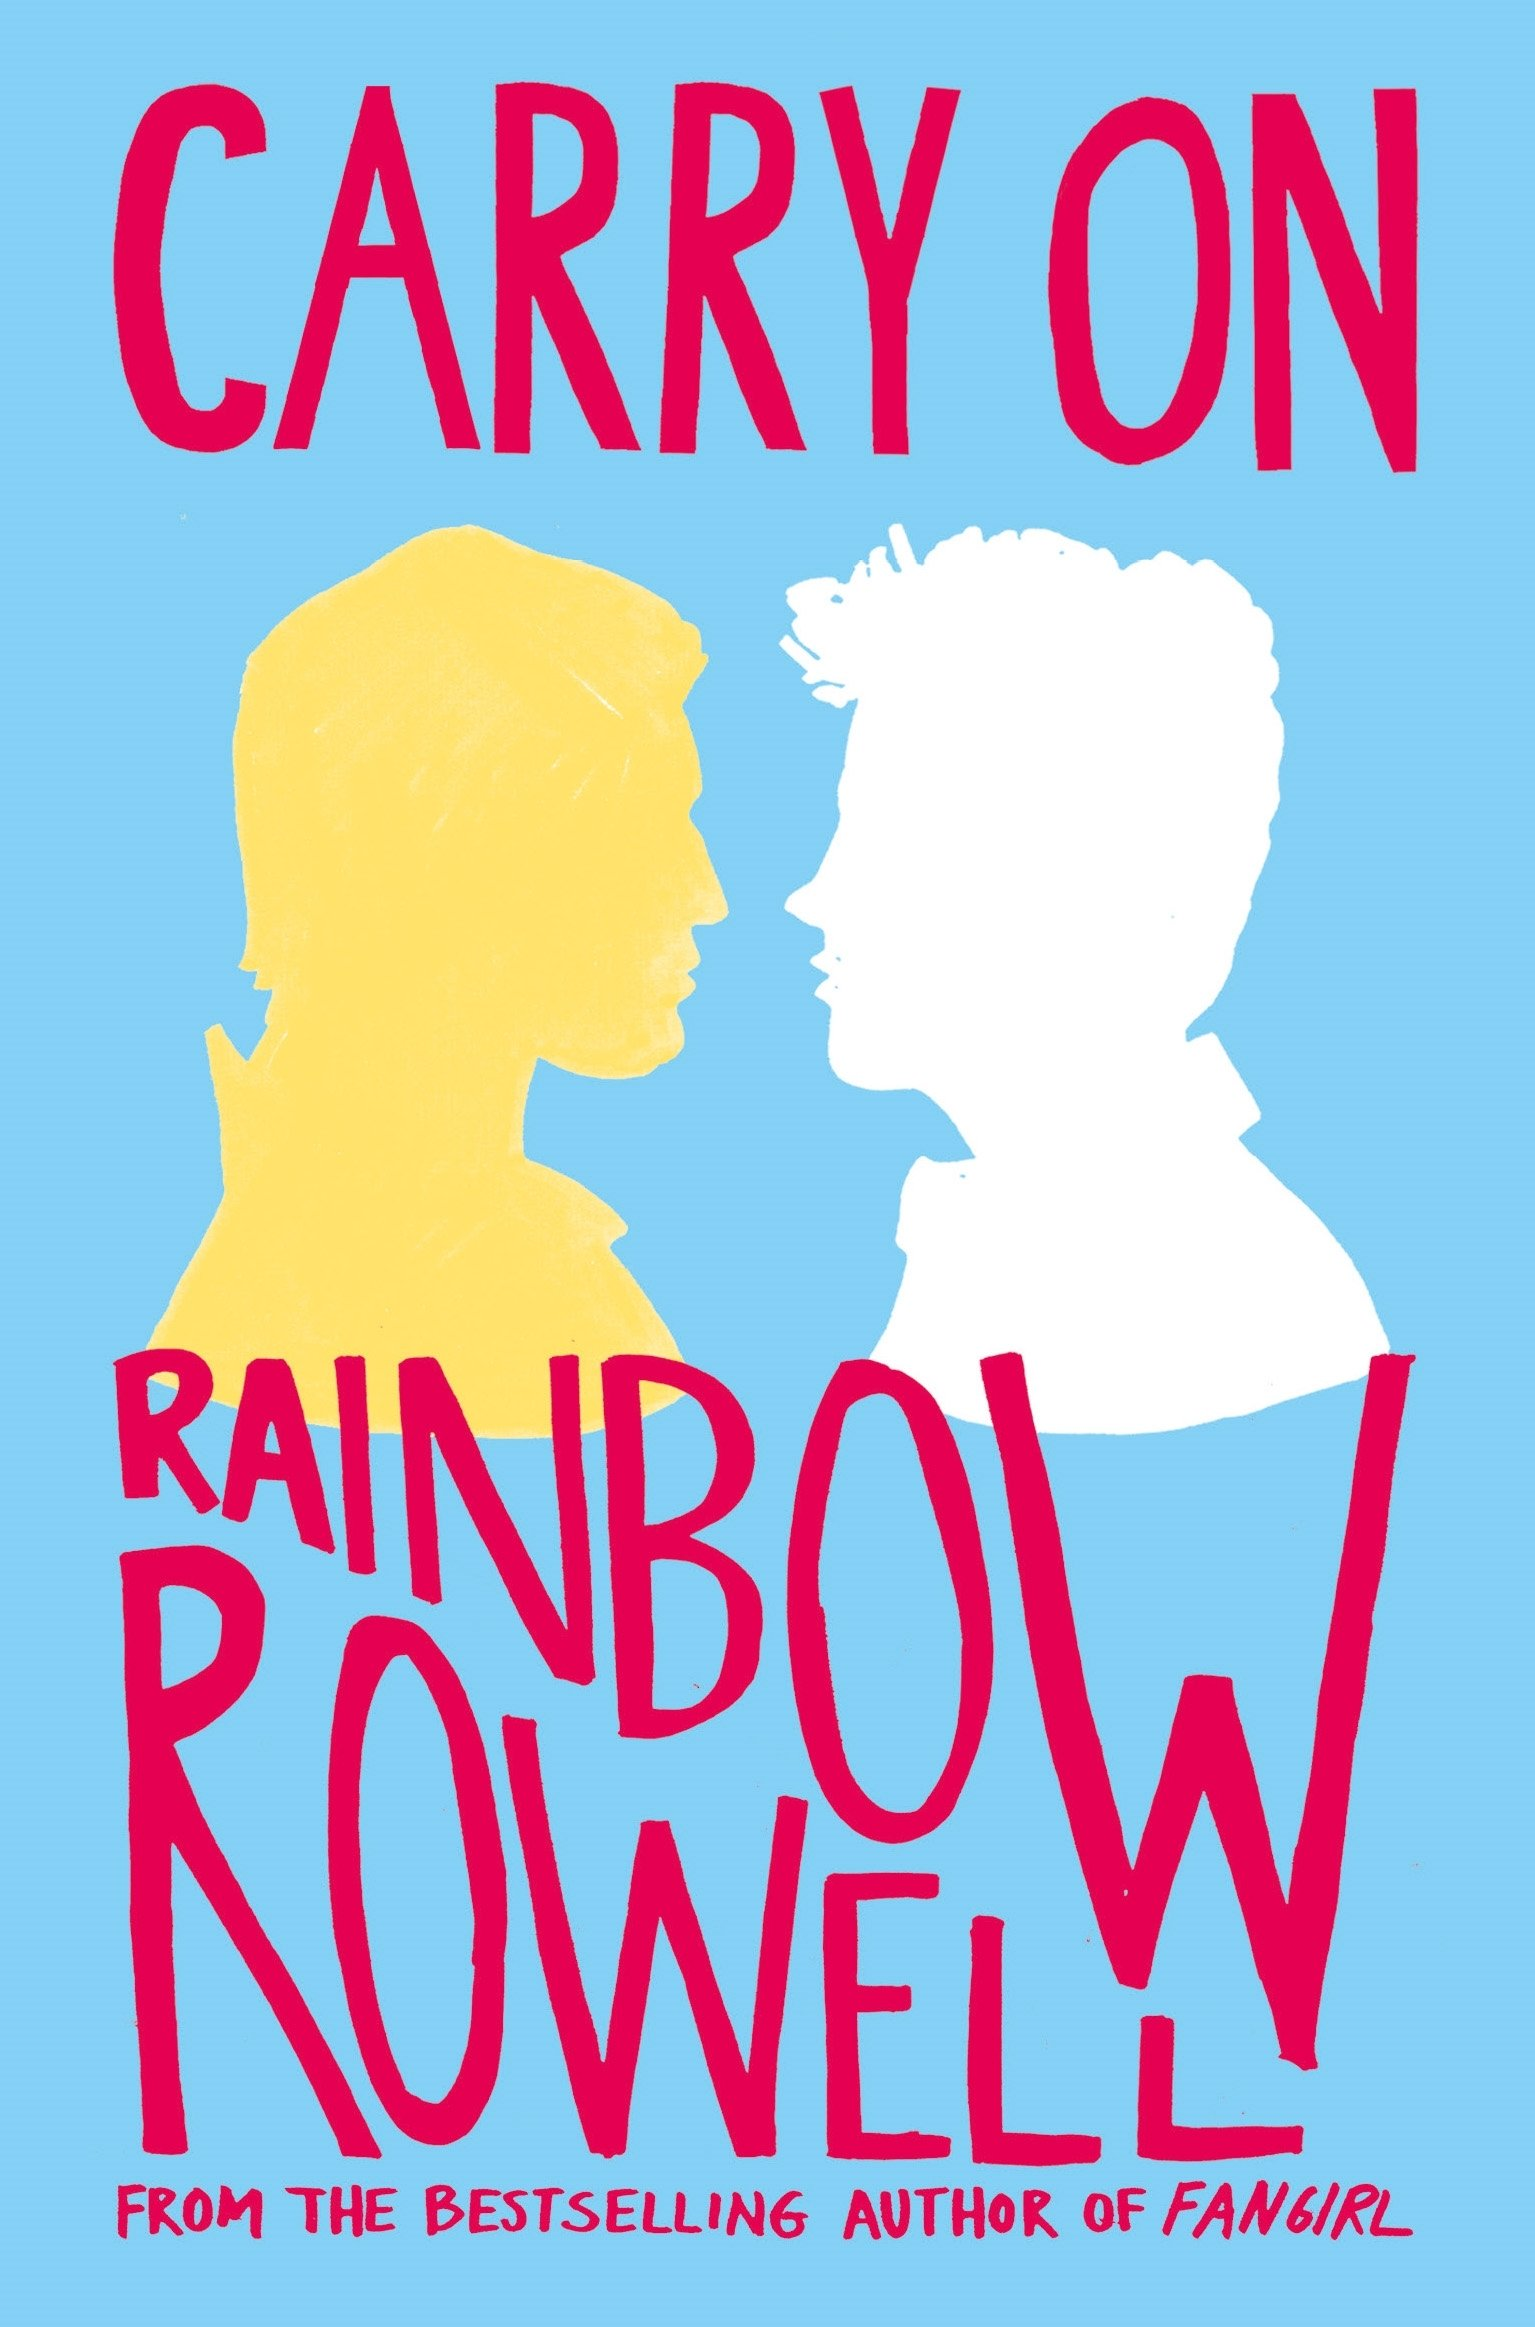 Carry On (Anglais) Broché – 25 février 2016 Rainbow Rowell Macmillan 1447266943 YOUNG ADULT FICTION / LGBT